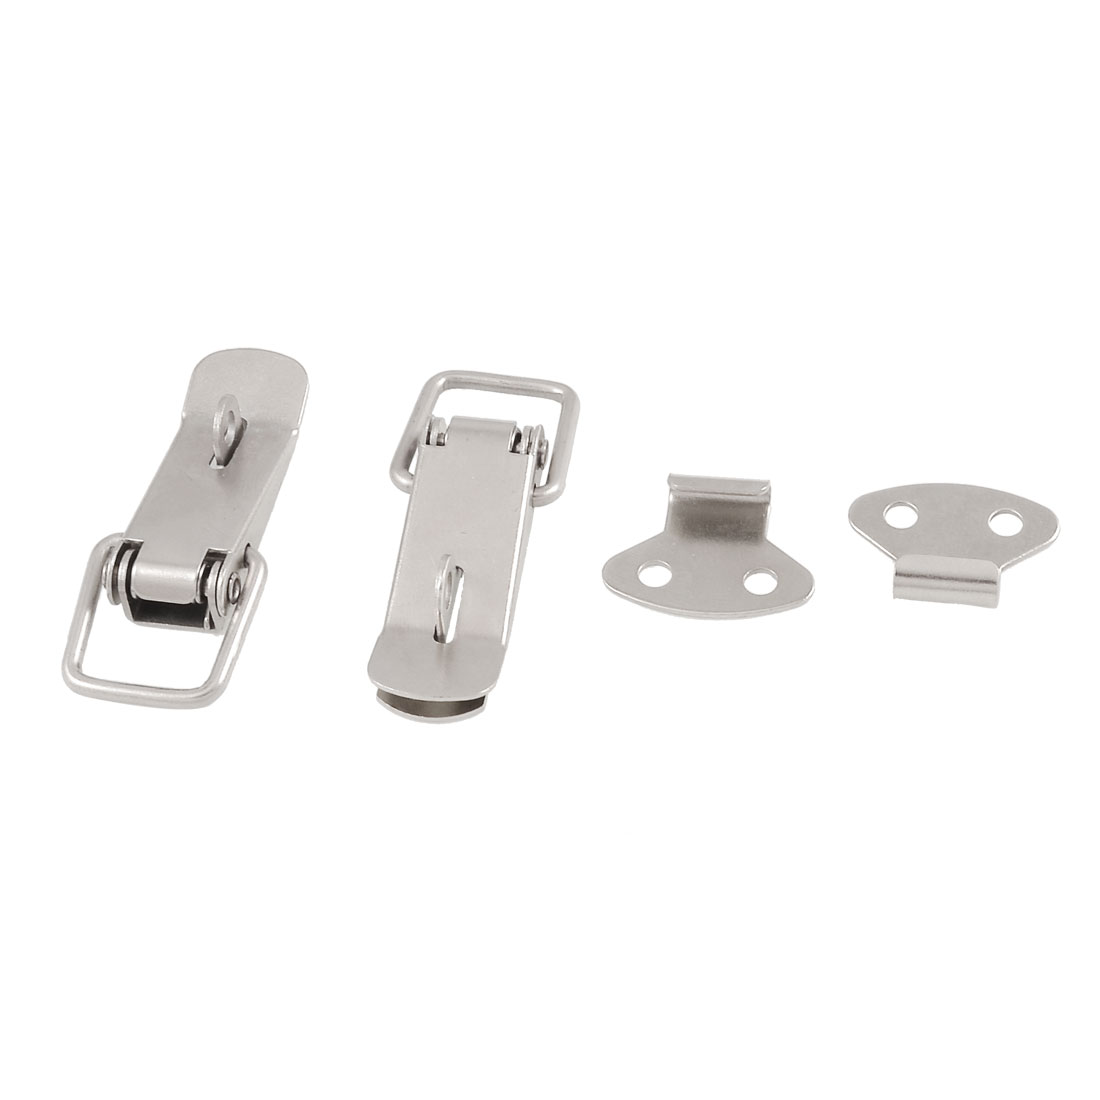 2 Pcs Hardware Aviation Toolbox Silver Tone Metal Toggle Latch